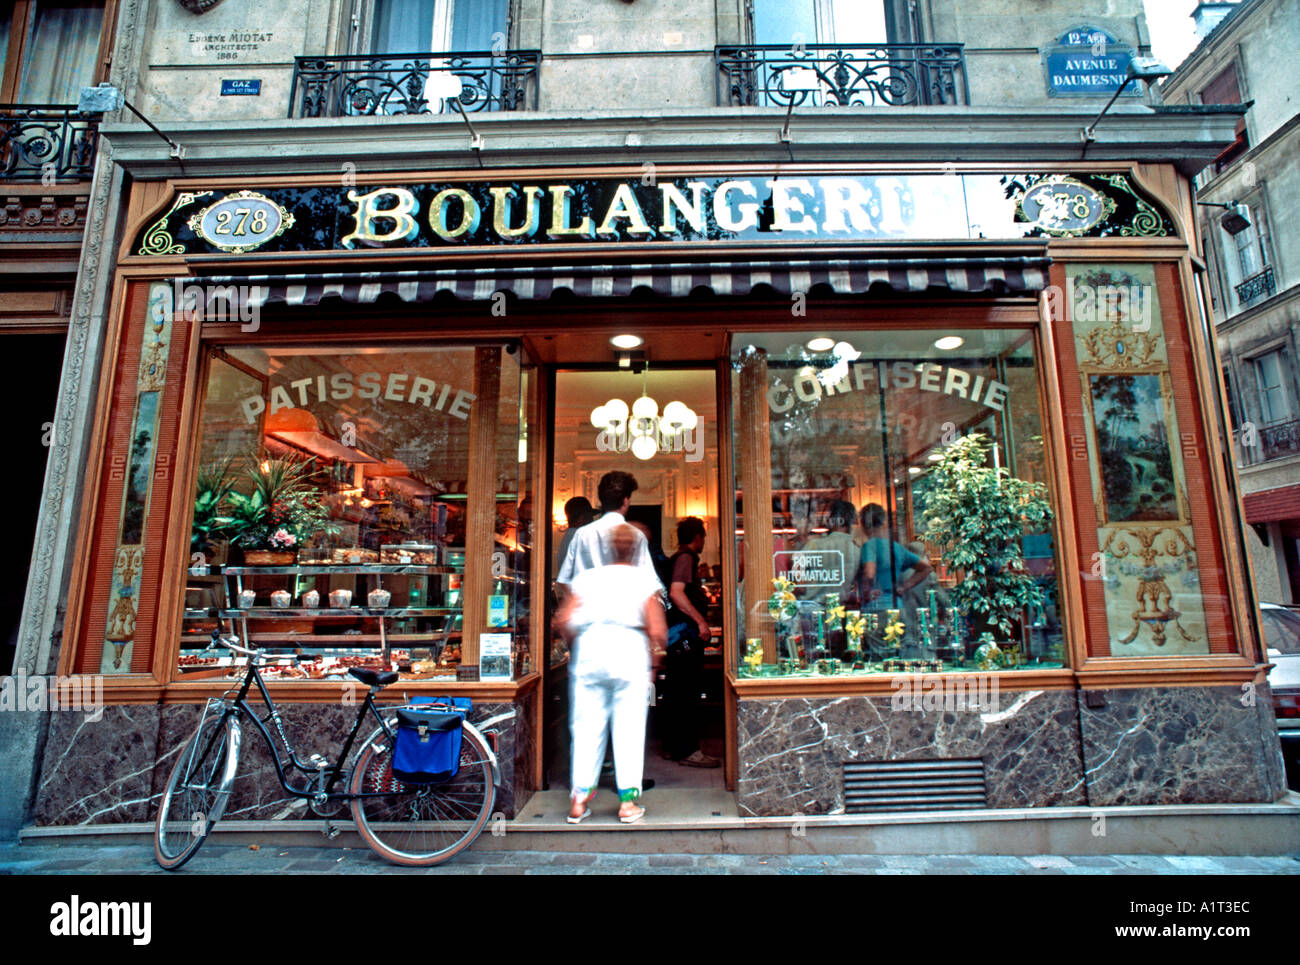 Vintage French Bakery Shop Front Paris France Boulangerie Patisserie Exterior Old Storefront Window